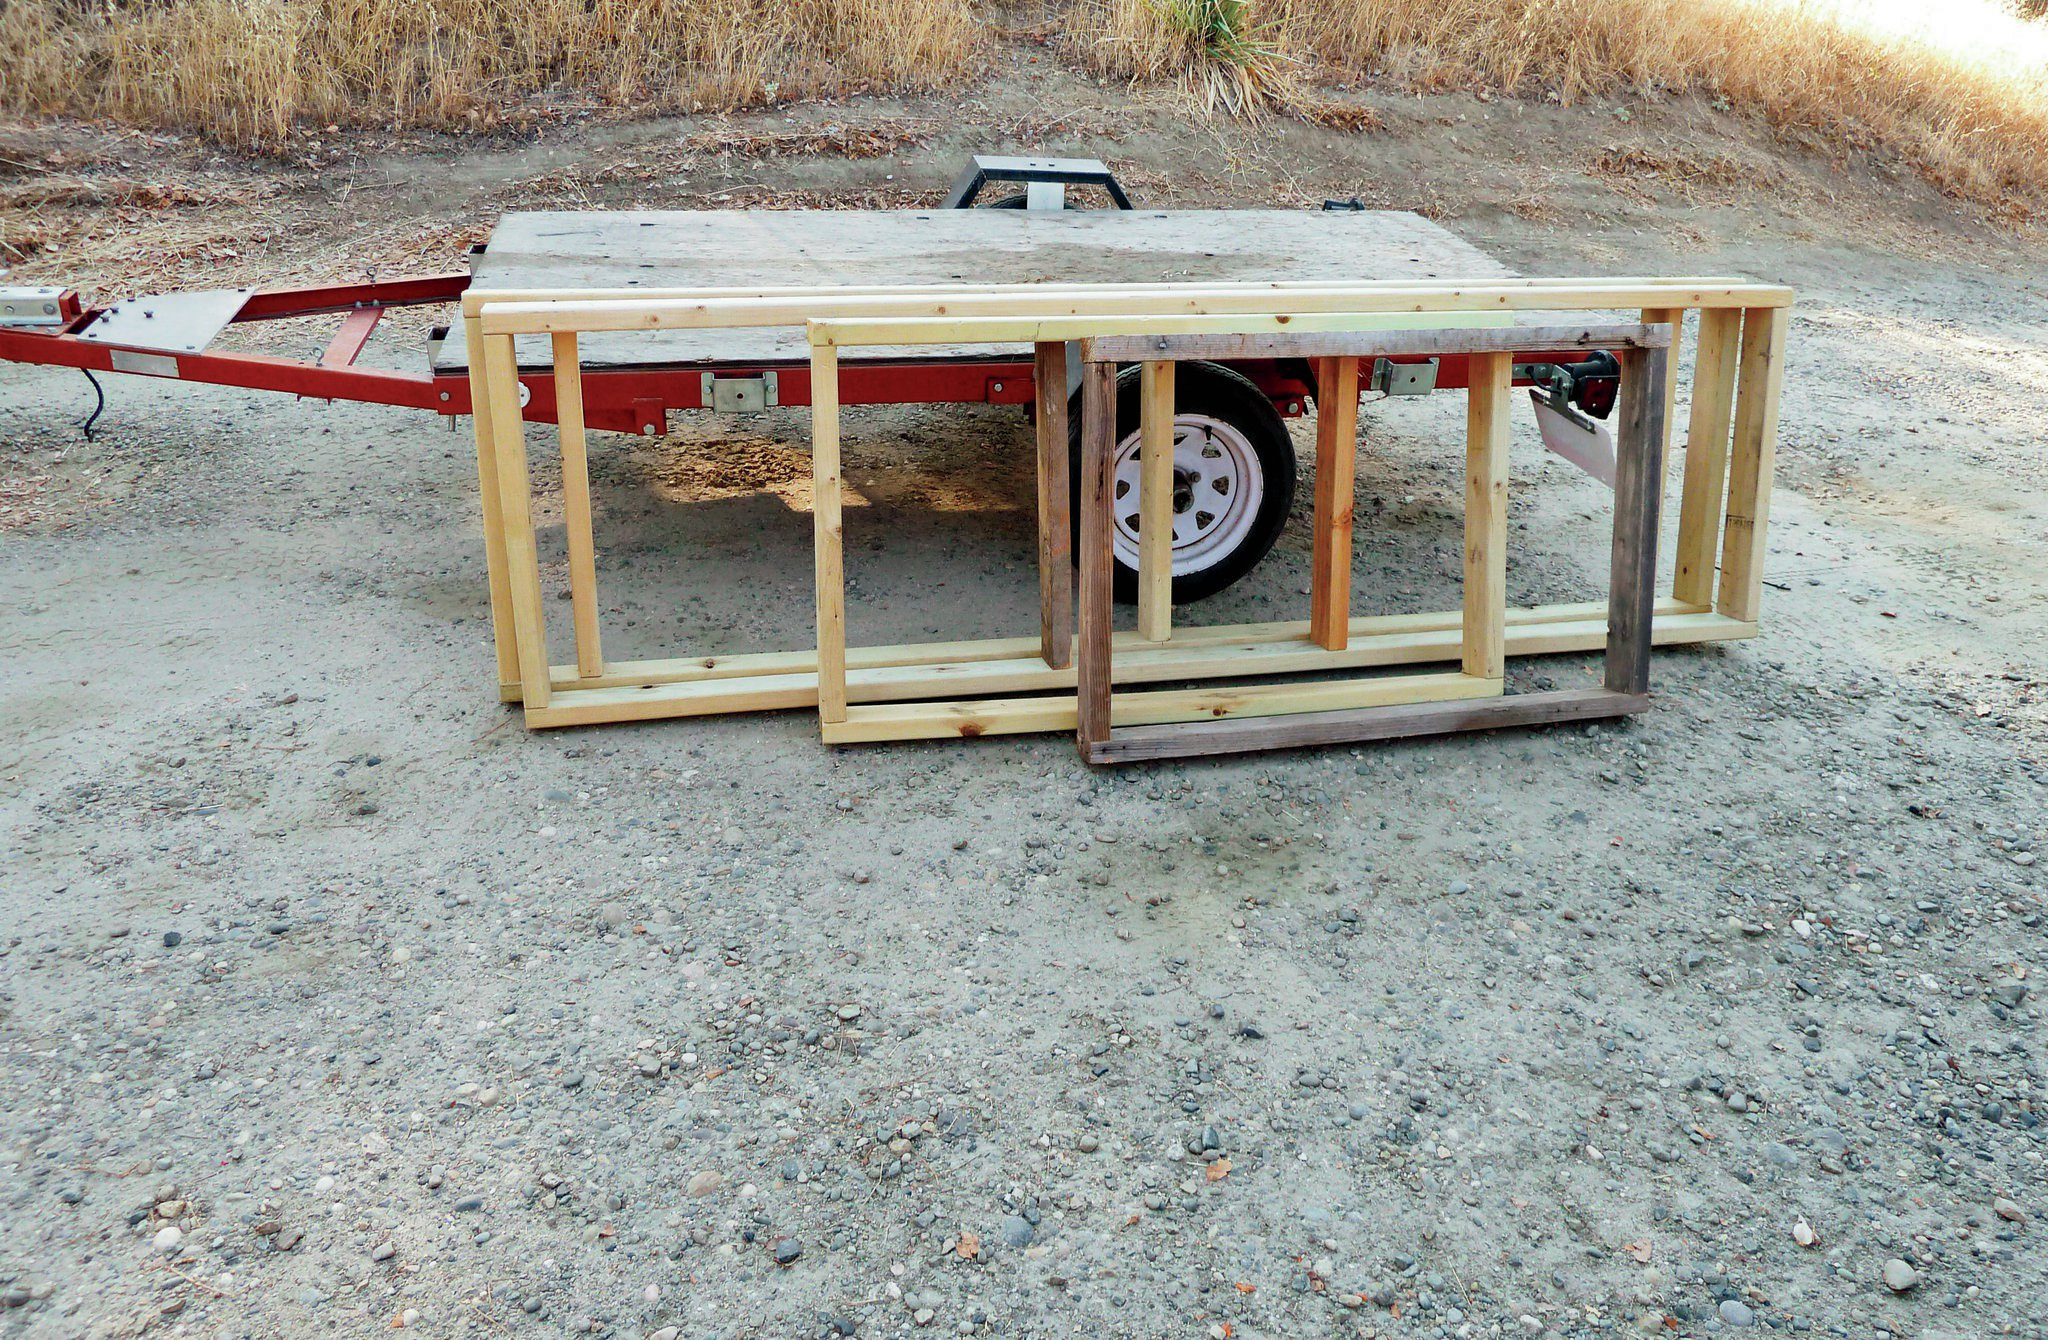 An aluminum frame would have been nice, but per the norm, the budget (or lack thereof) had me looking for a suitable substitute. I was able to build the entire frame and lid out of lumber I had left over from a shed I just finished building and from old wood I scavenged from a friend. Thanks, Swanny!